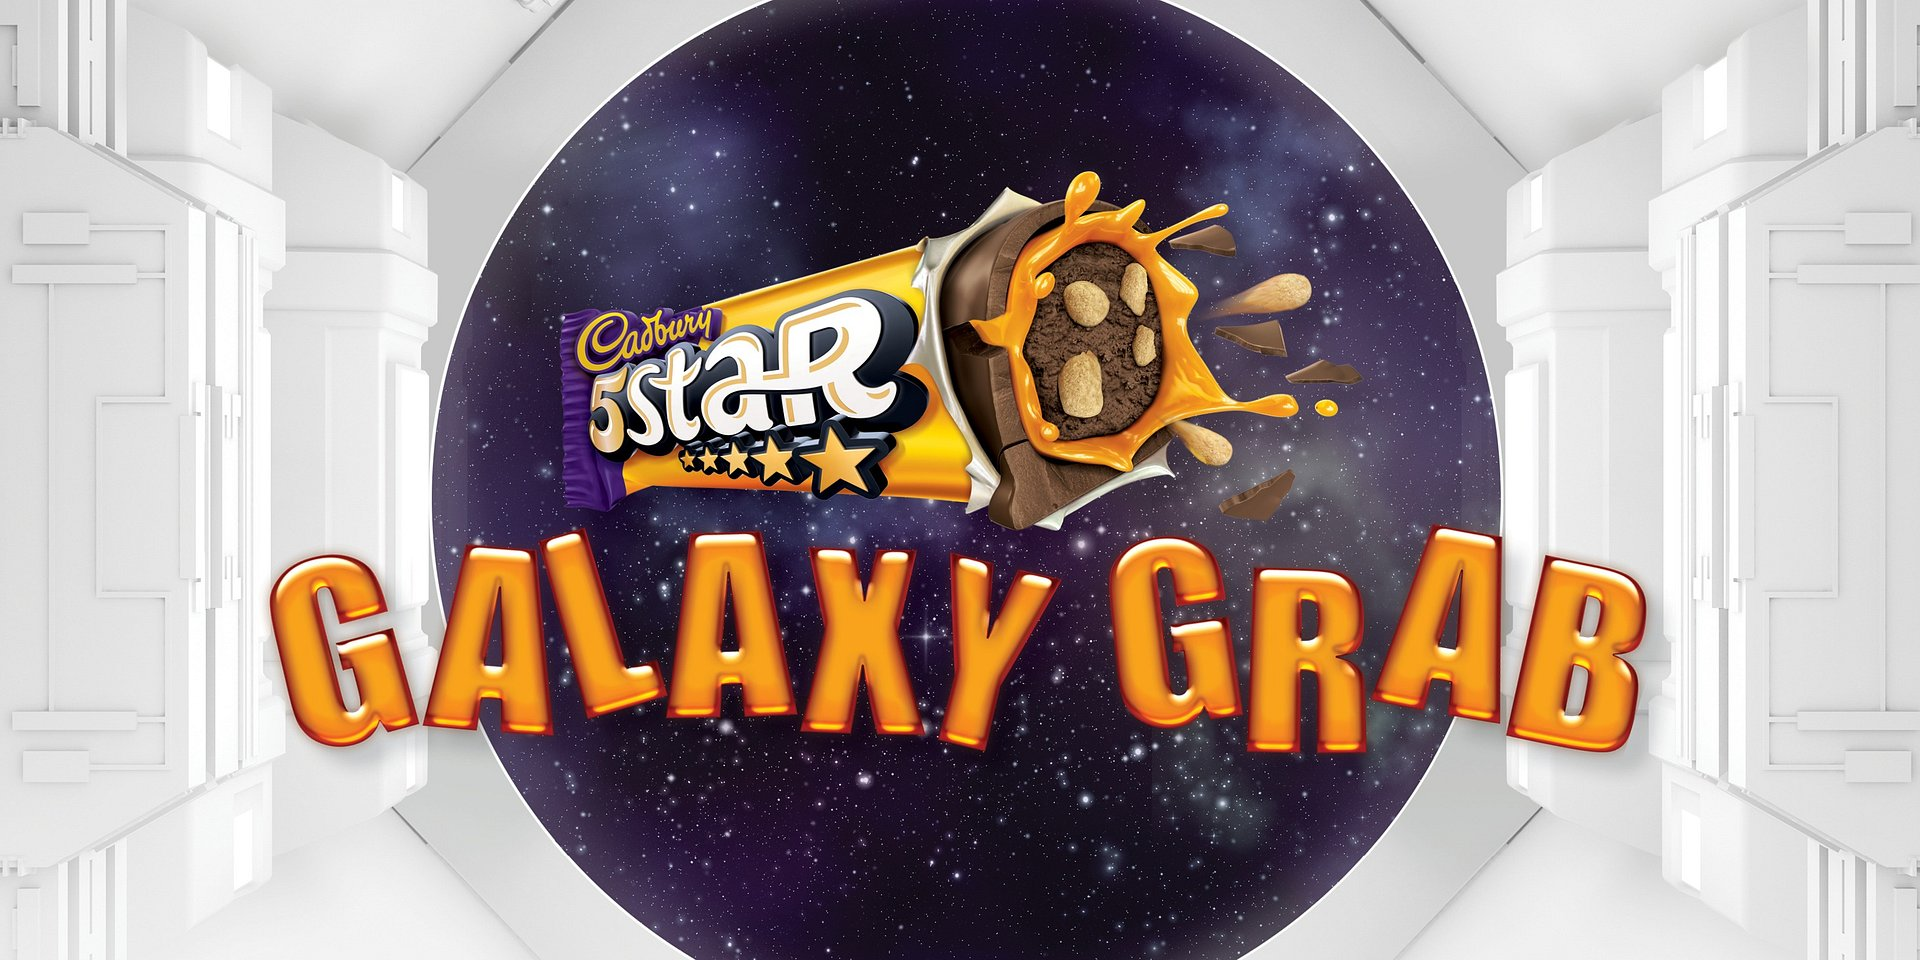 Cadbury 5Star hits fans with another banging promo! Enter NOW for your chance to win bomb-ass weekly prizes and the main prize of a VW Polo Beats #5StarGalaxyGrab